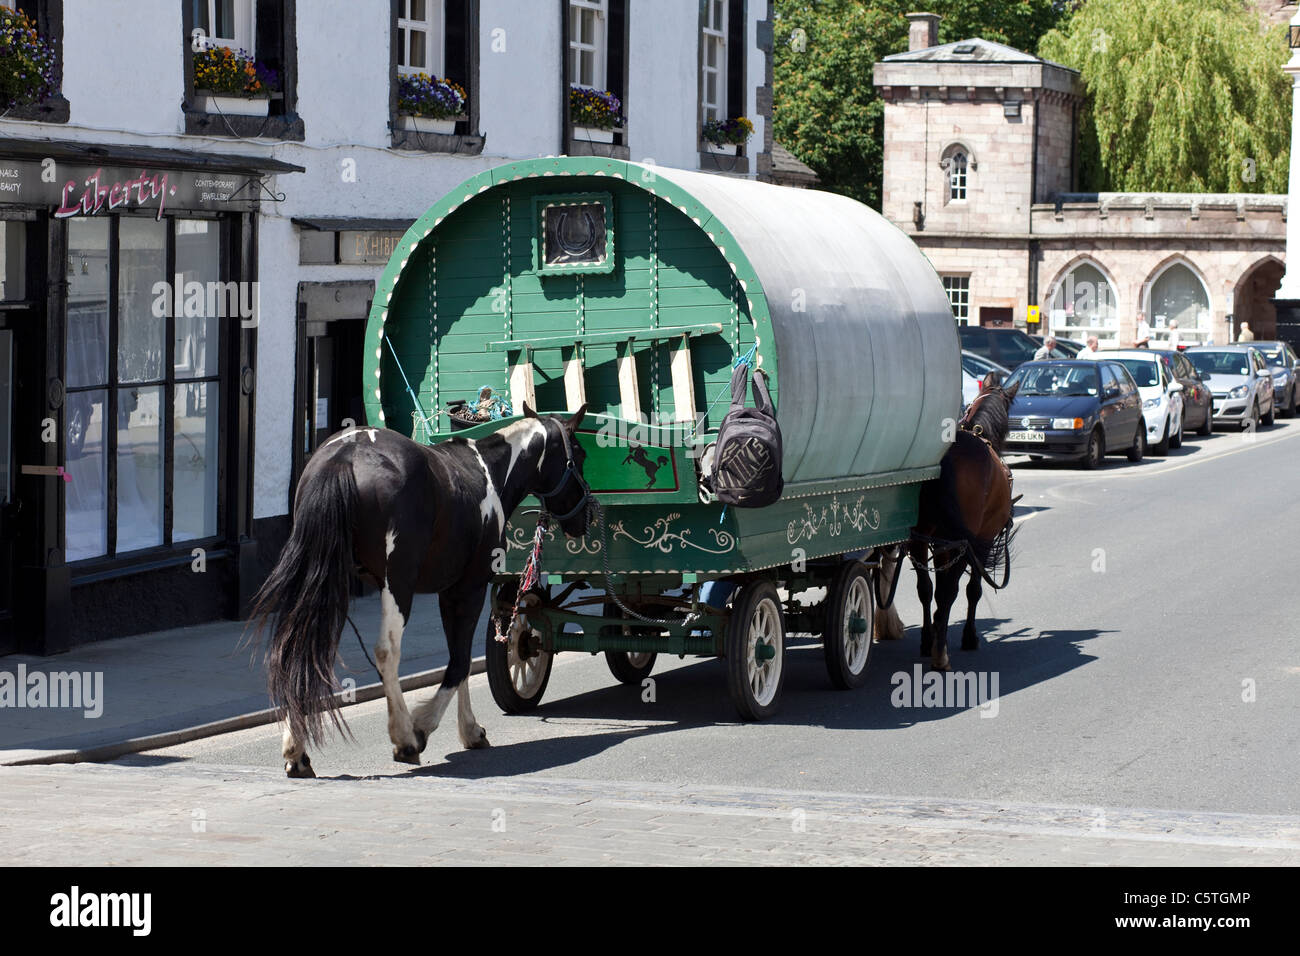 Horse drawn Gypsy Caravan in Boroughgate at the Annual Horse Fair in Appleby in Westmoreland. - Stock Image